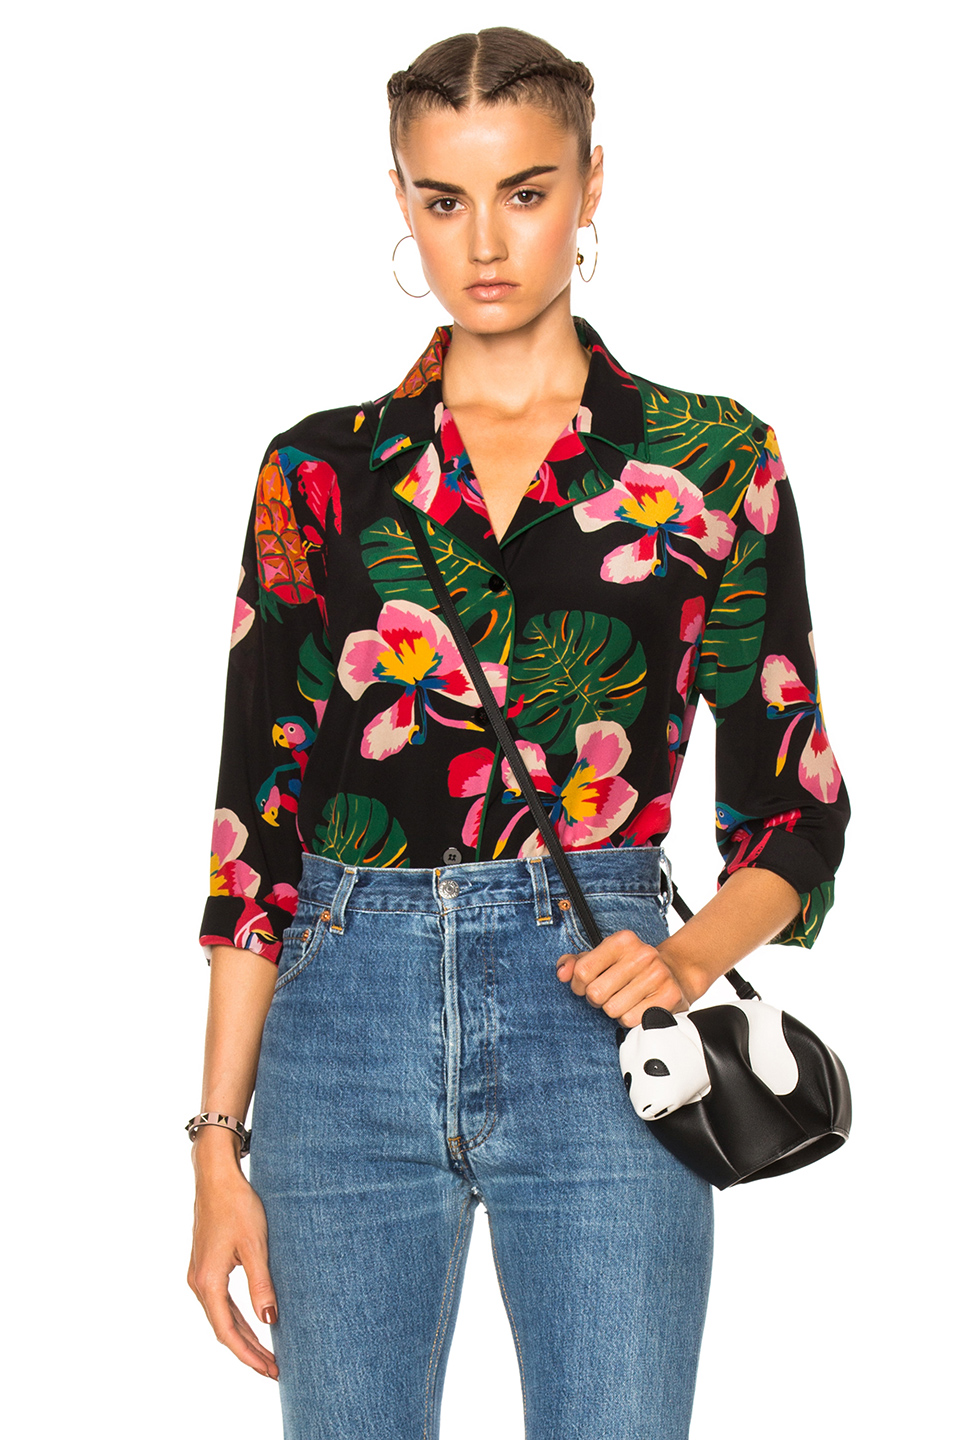 Valentino Tropical Dream Blouse in Black,Floral,Green,Red